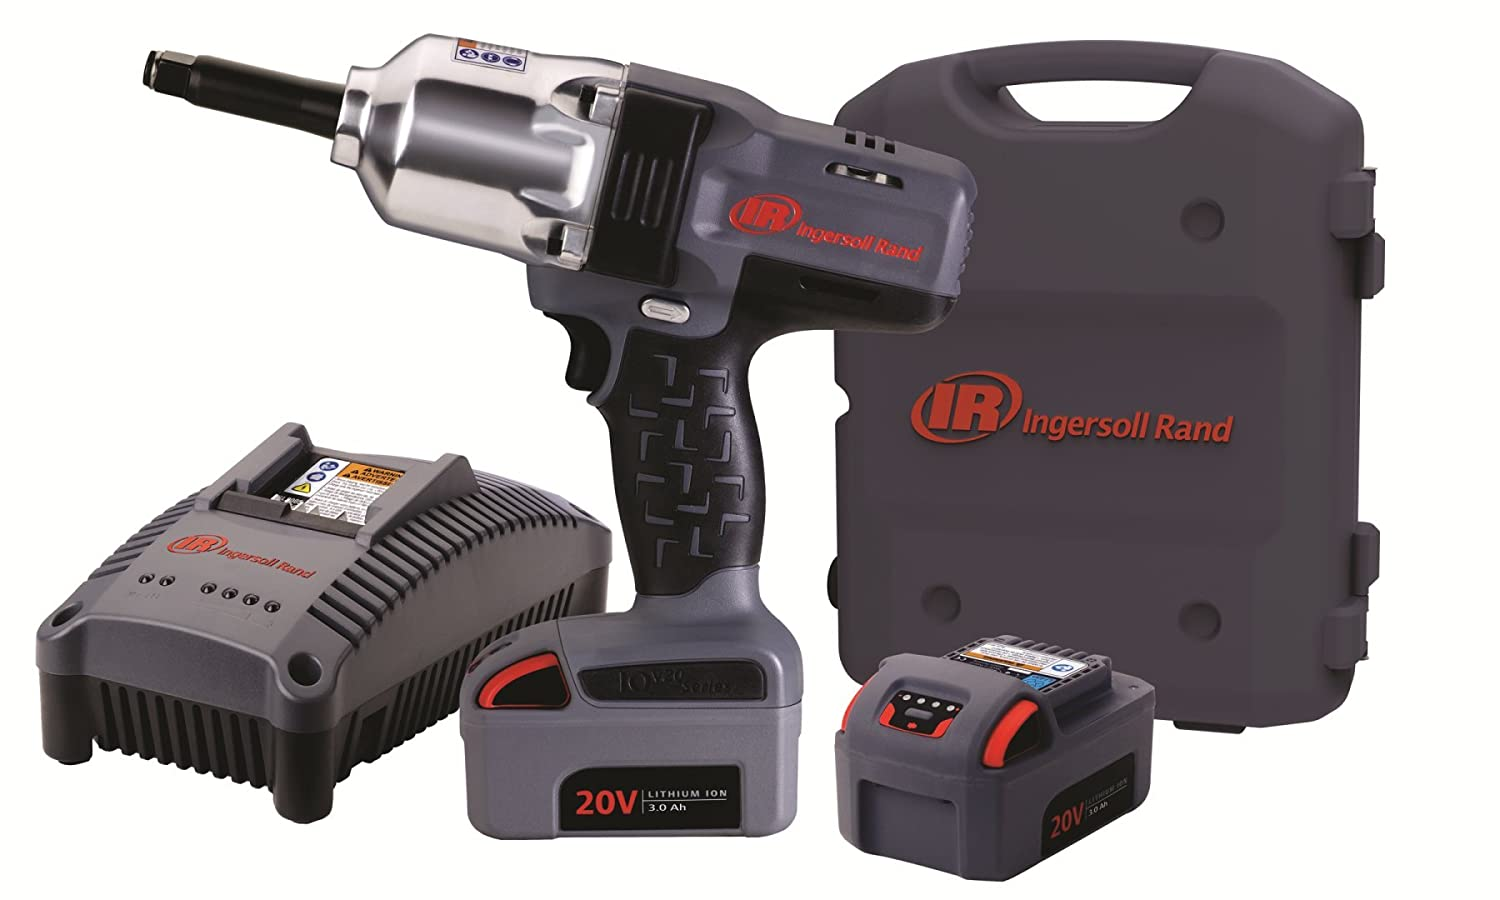 Ingersoll Rand W7250-K2 1 2-Inch High-Torque 2-Inch Extended Anvil Impactool Kit with Charger, Li-ion Batteries and Case